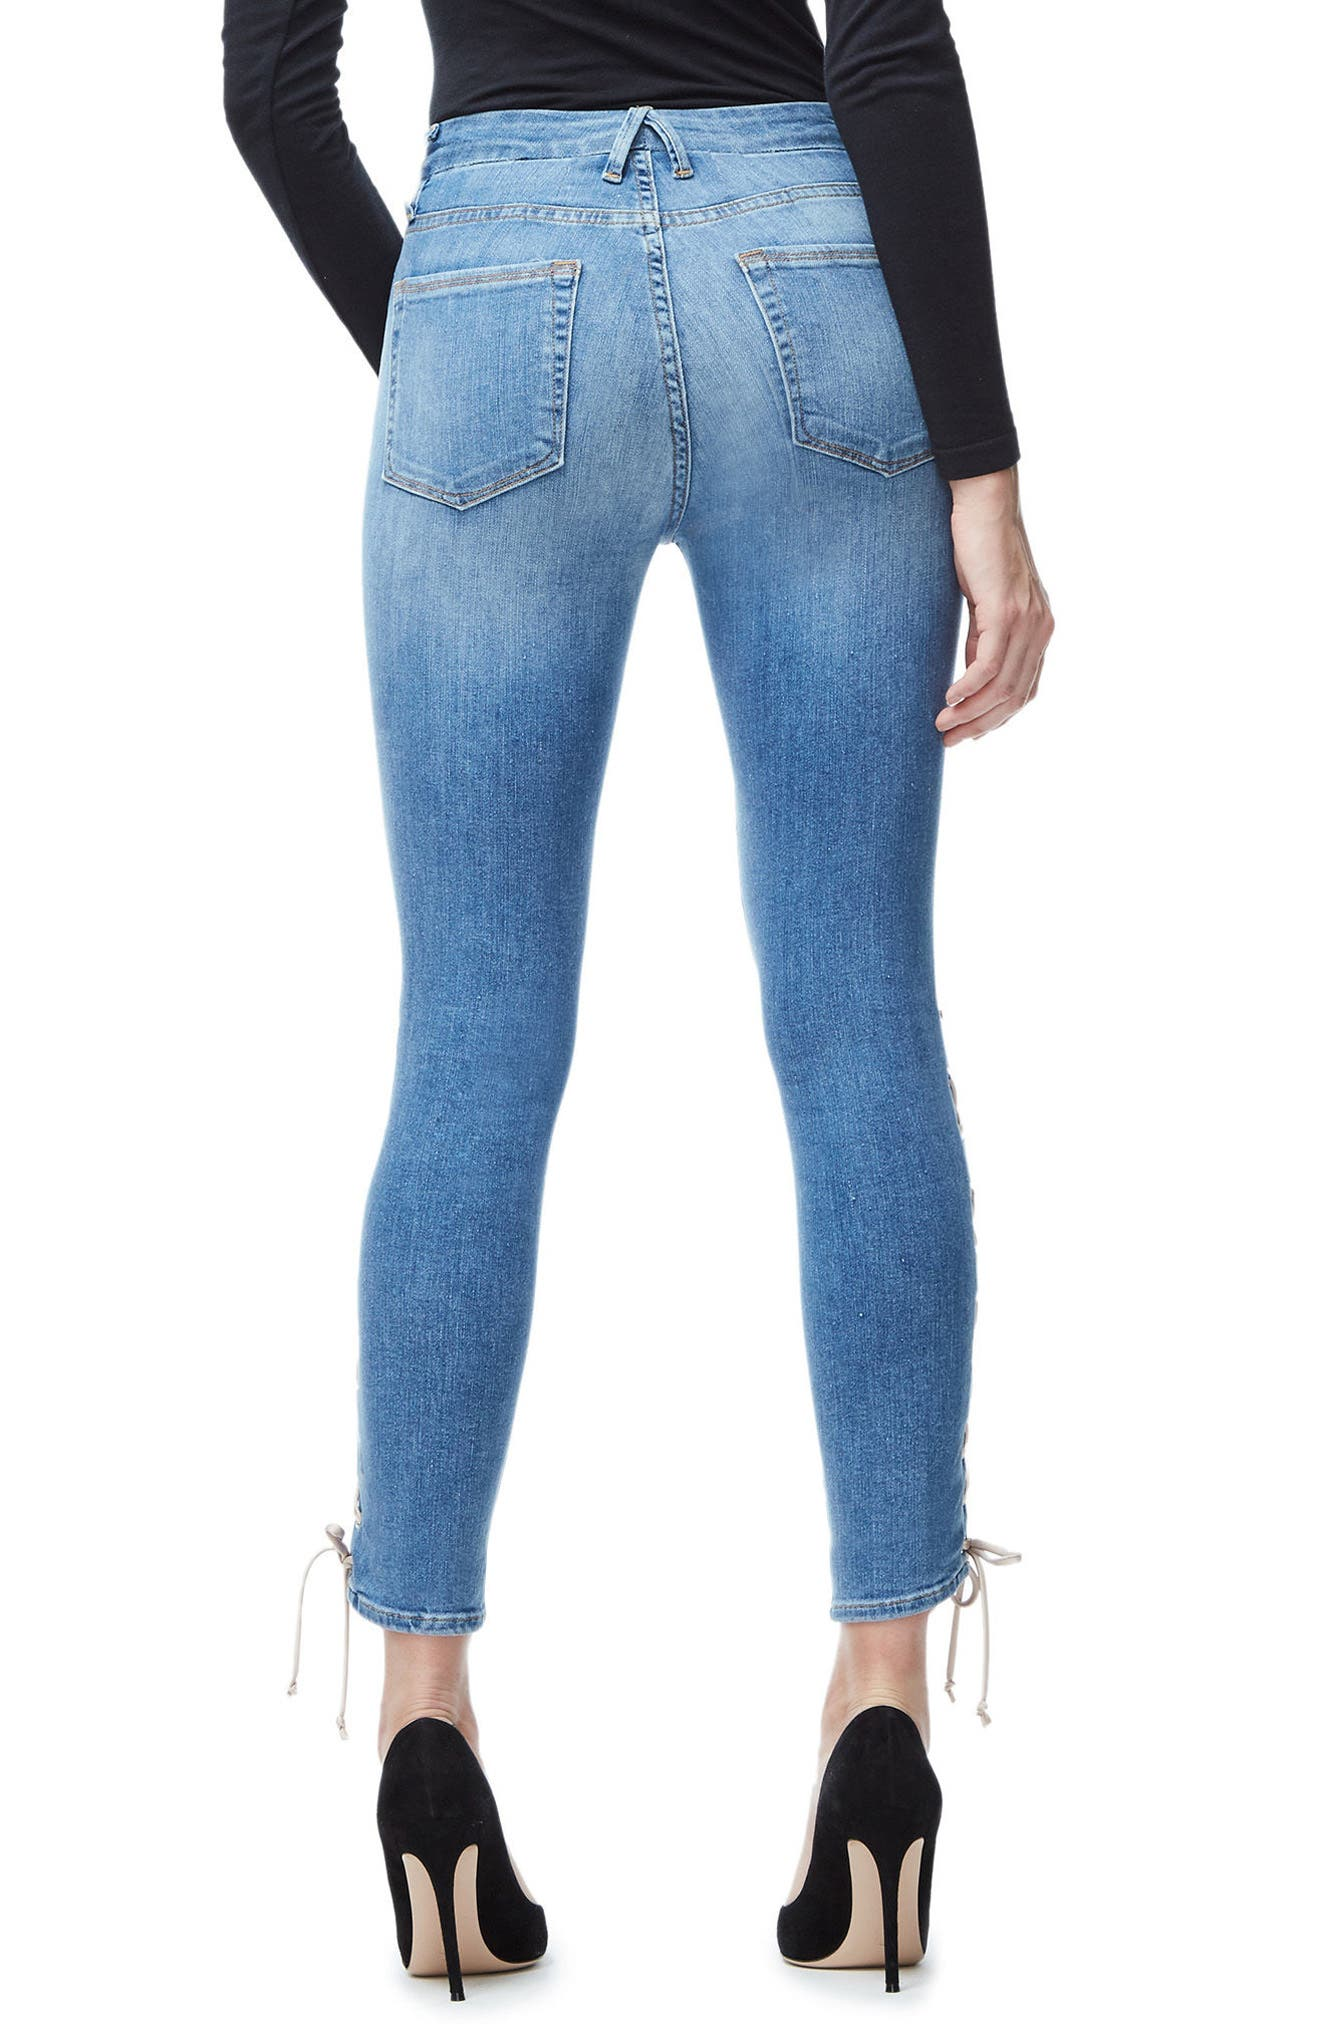 Good Legs Lace-Up High Waist Skinny Jeans,                             Alternate thumbnail 2, color,                             Blue045